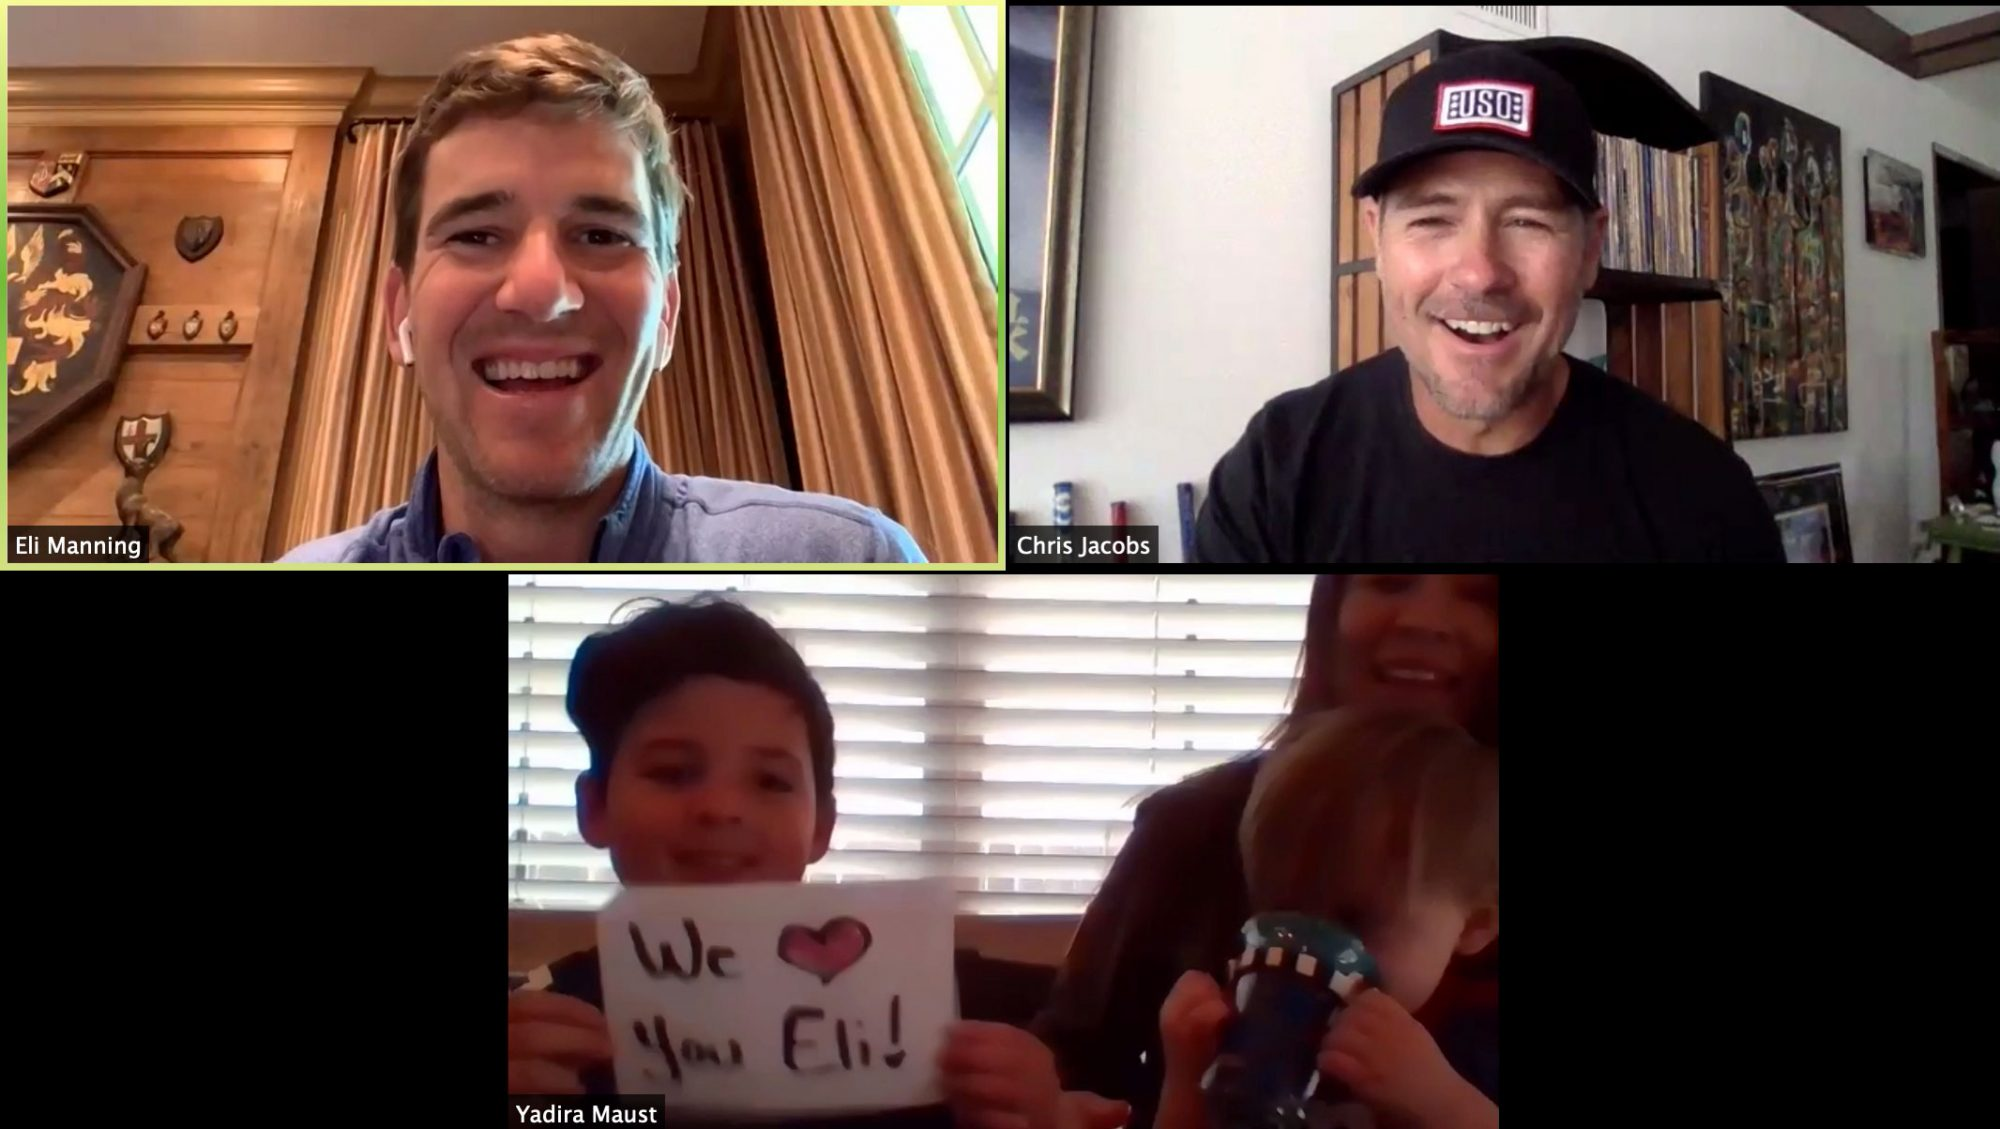 Eli Manning on USO call with service members